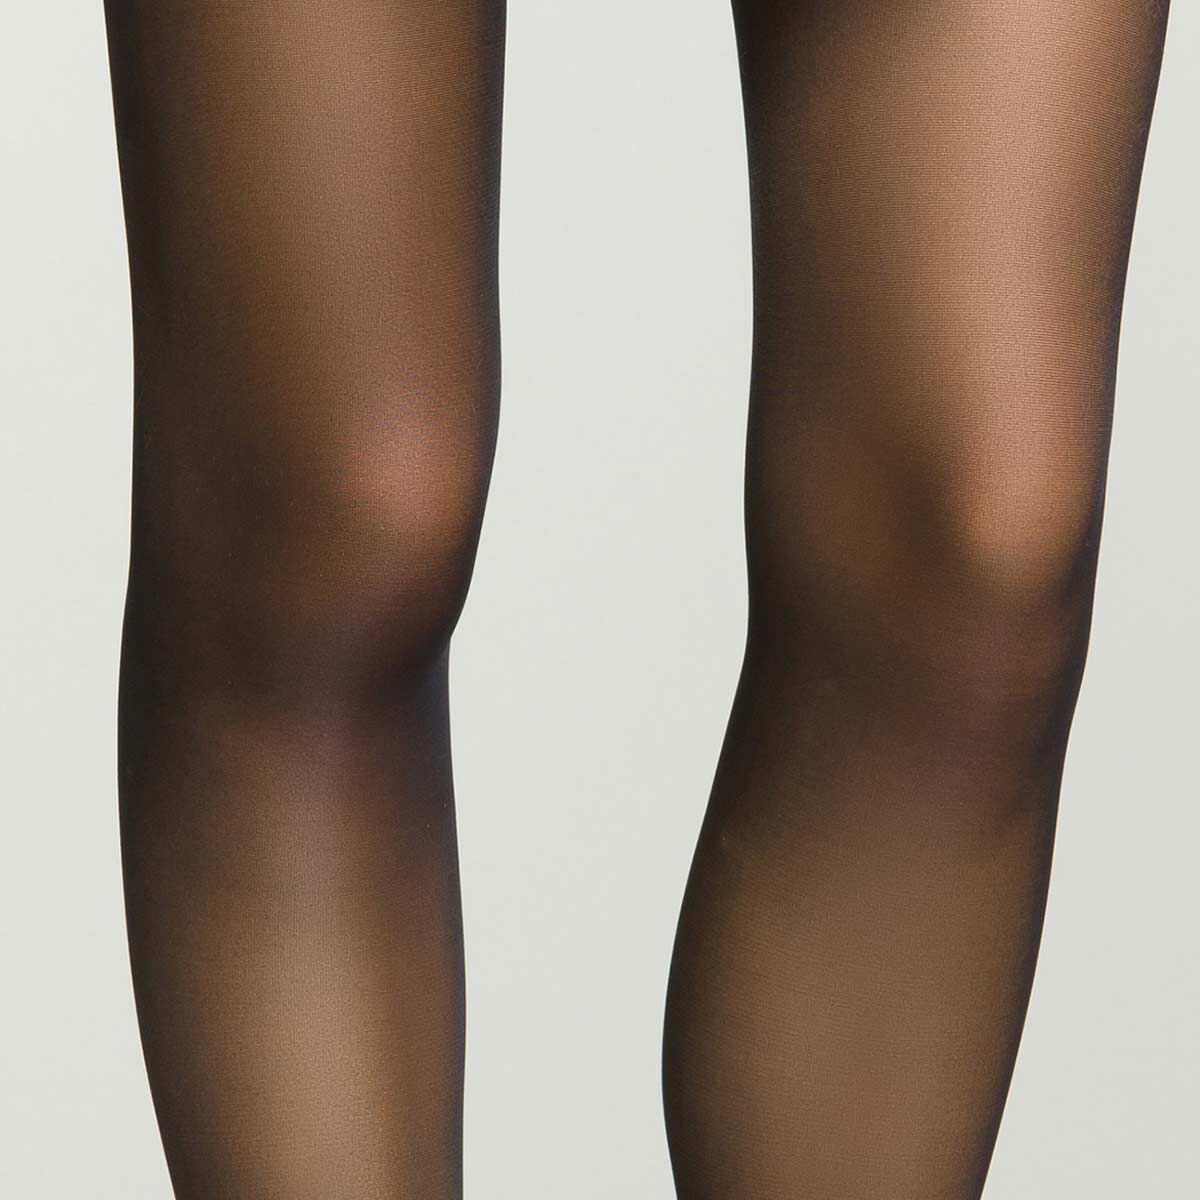 Champion Collants absolus pour Femmes av